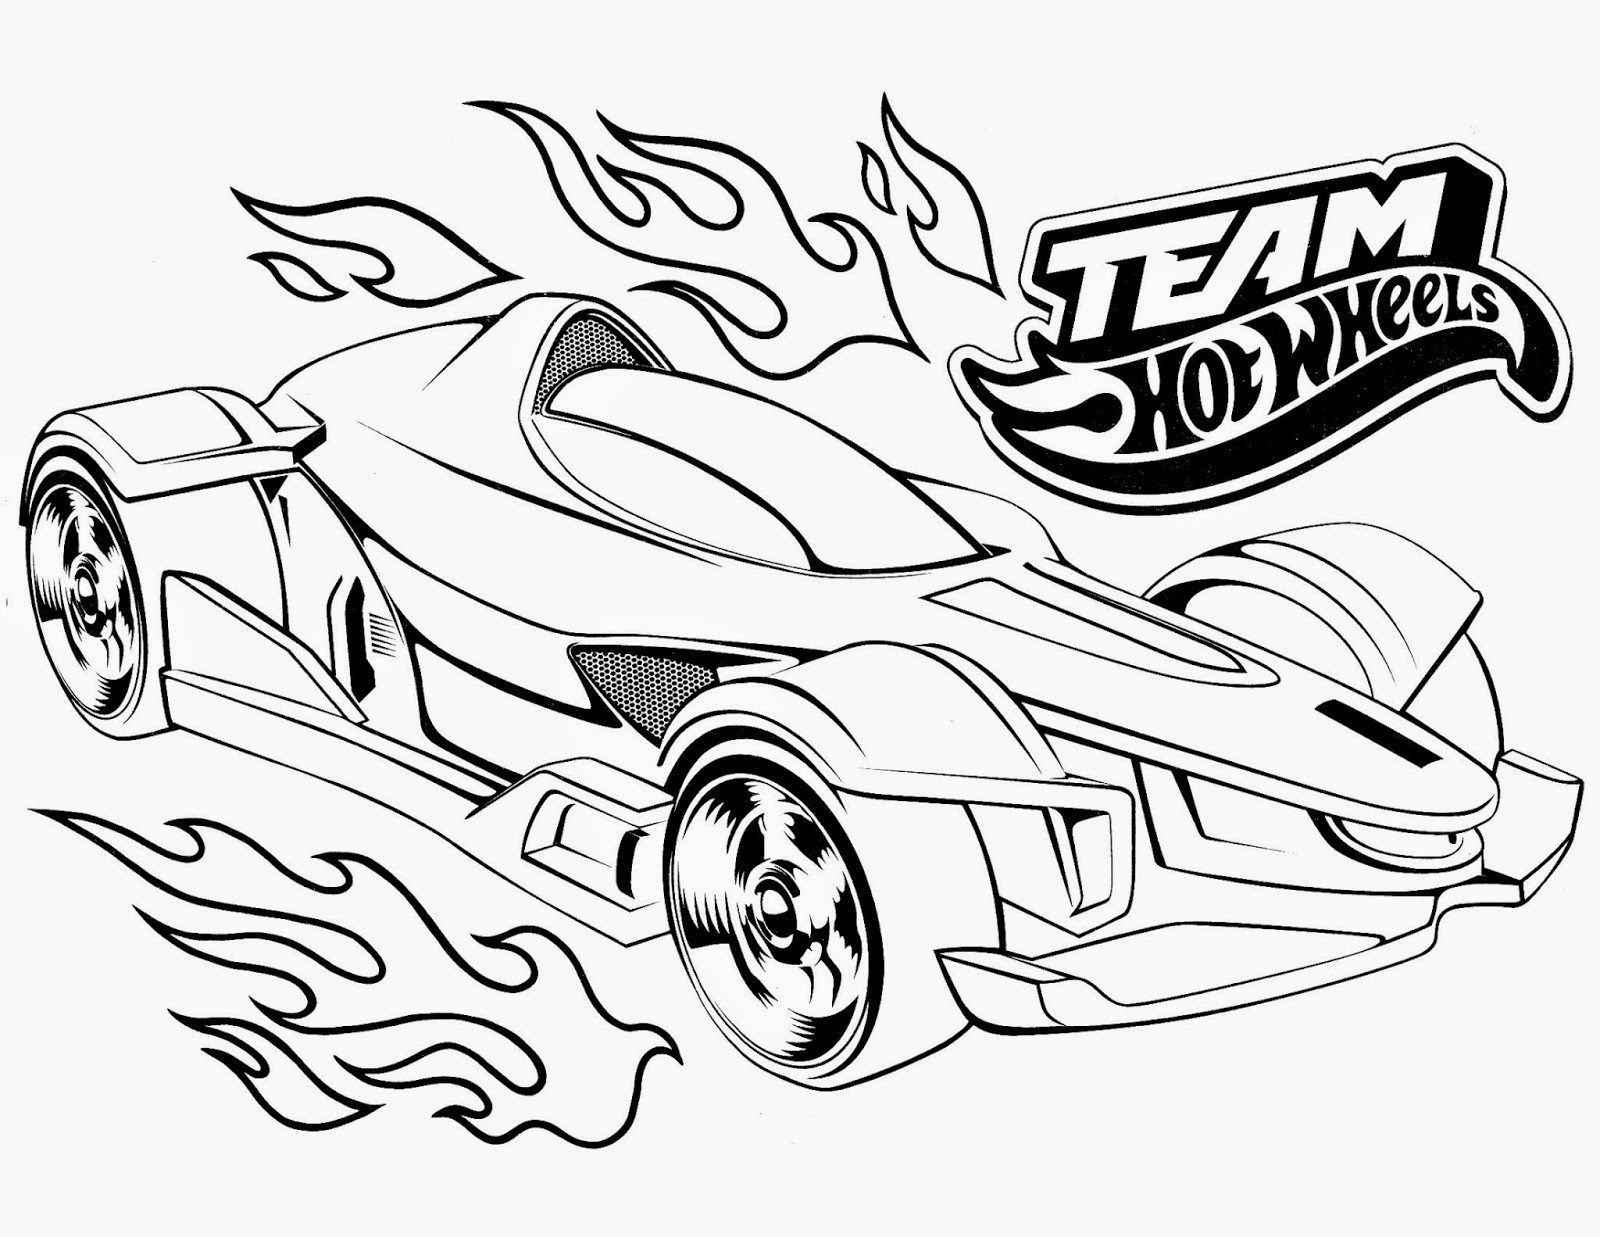 22 Awesome Photo Of Race Car Coloring Pages Davemelillo Com Race Car Coloring Pages Cars Coloring Pages Truck Coloring Pages